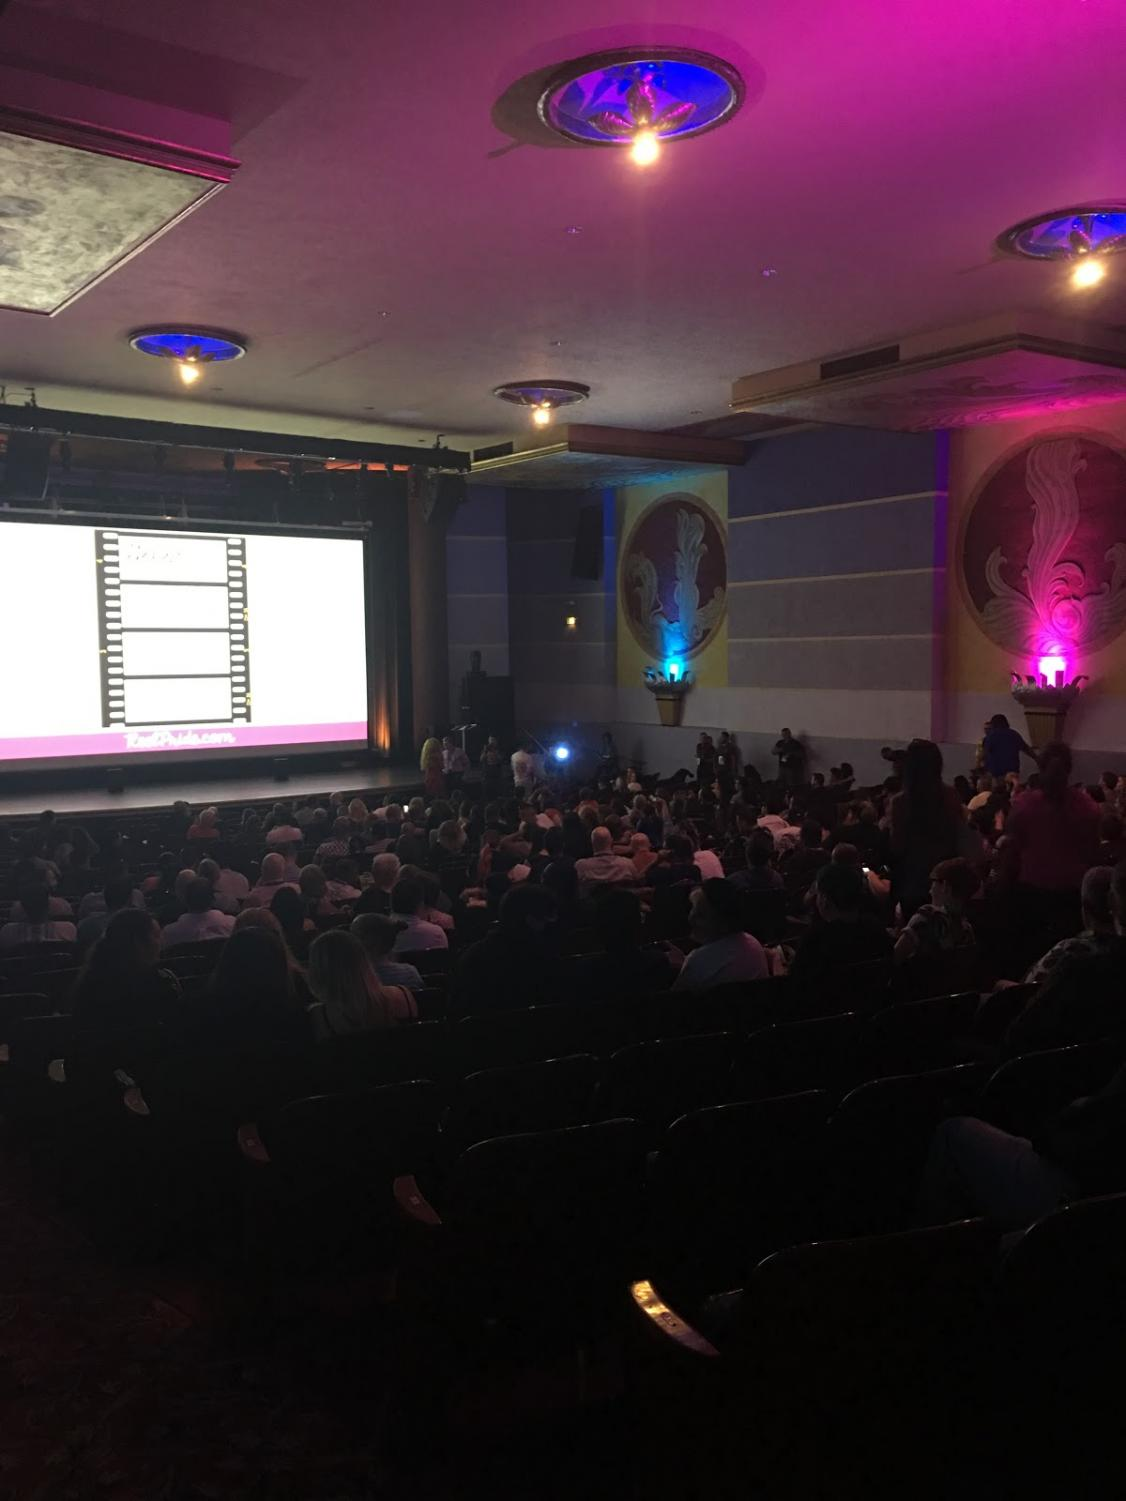 Audience preparing for the viewing of 'The Life of Lei: The Man Behind The Makeup' at Tower Theatre for Fresno Reel Pride Film Festival Thursday, Sept. 20, 2018.